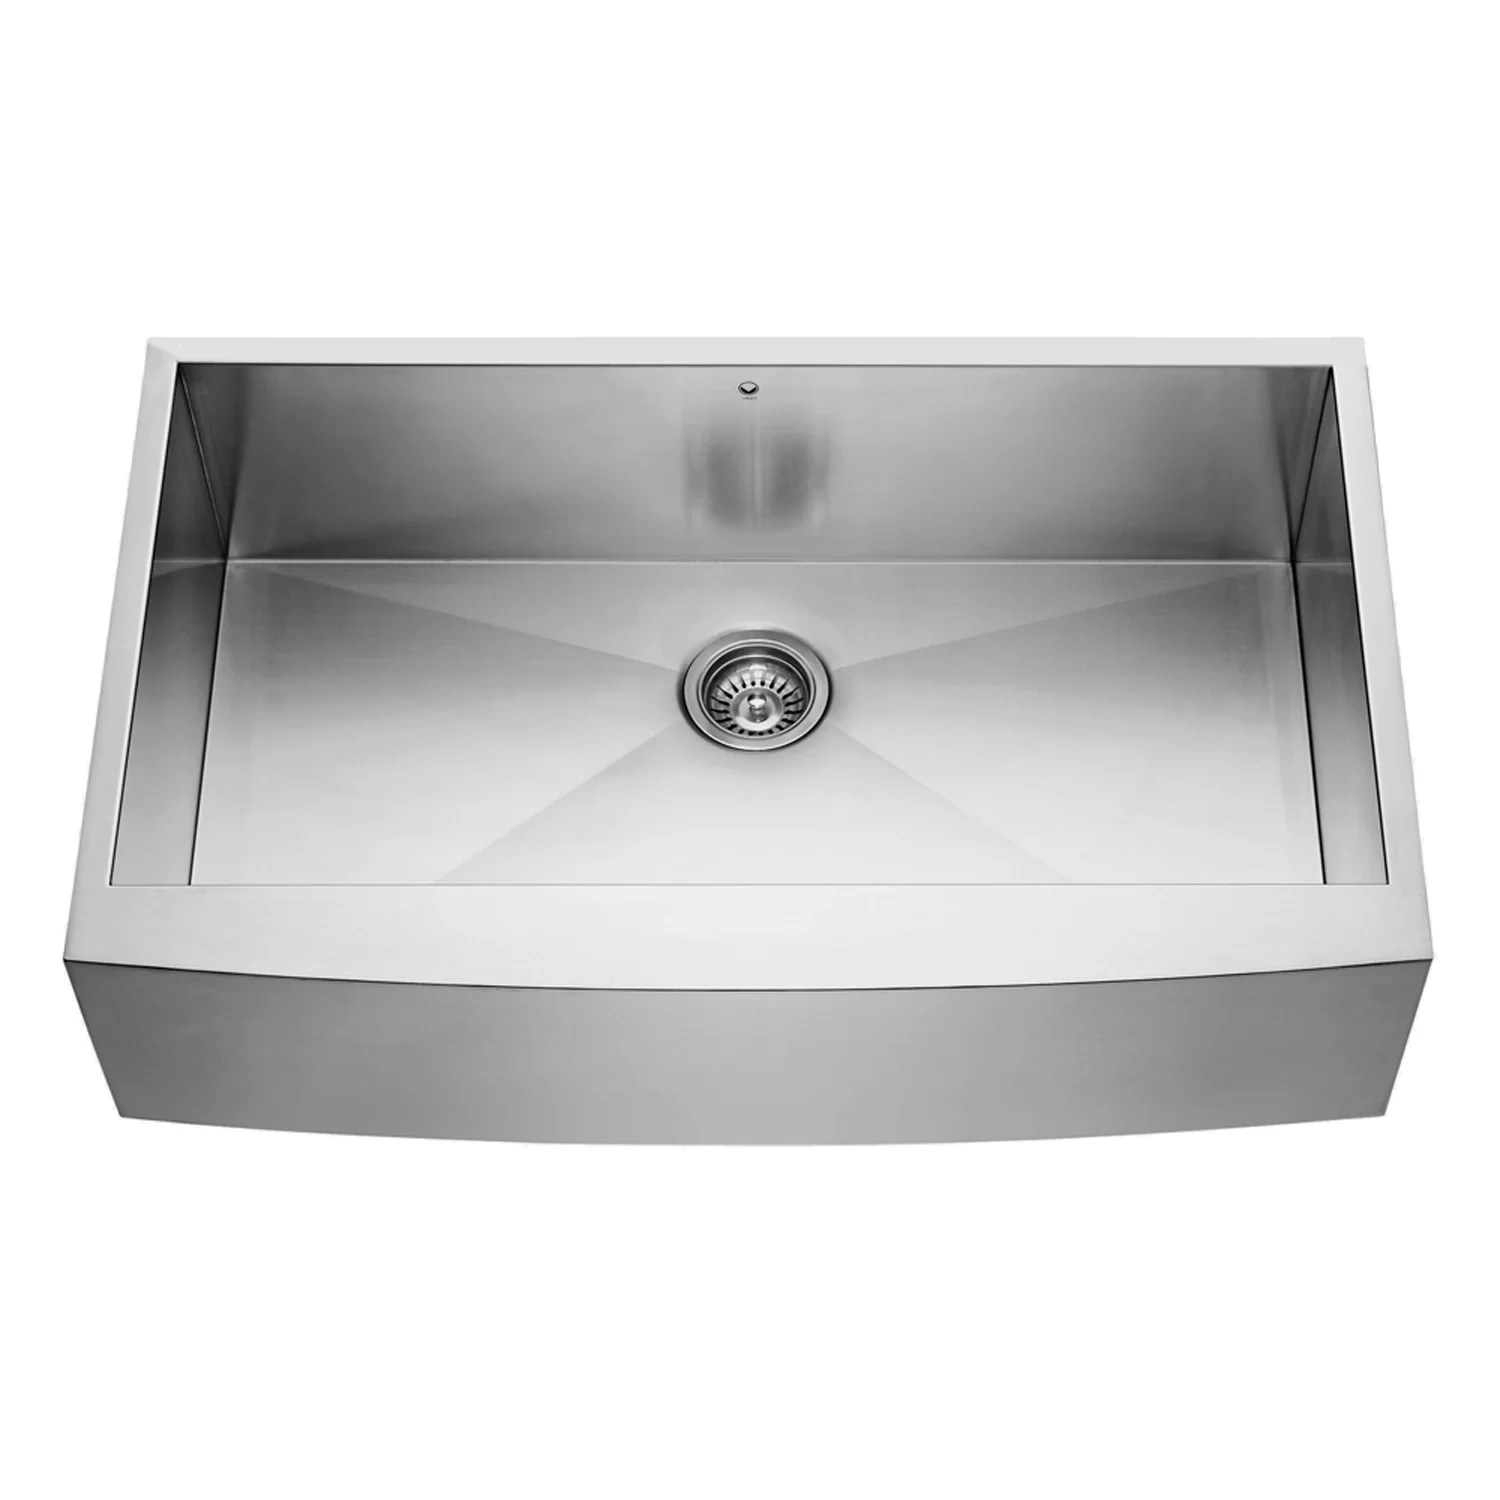 stainless steel kitchen sink reviews used commercial equipment chicago vigo 36 inch farmhouse apron single bowl 16 gauge